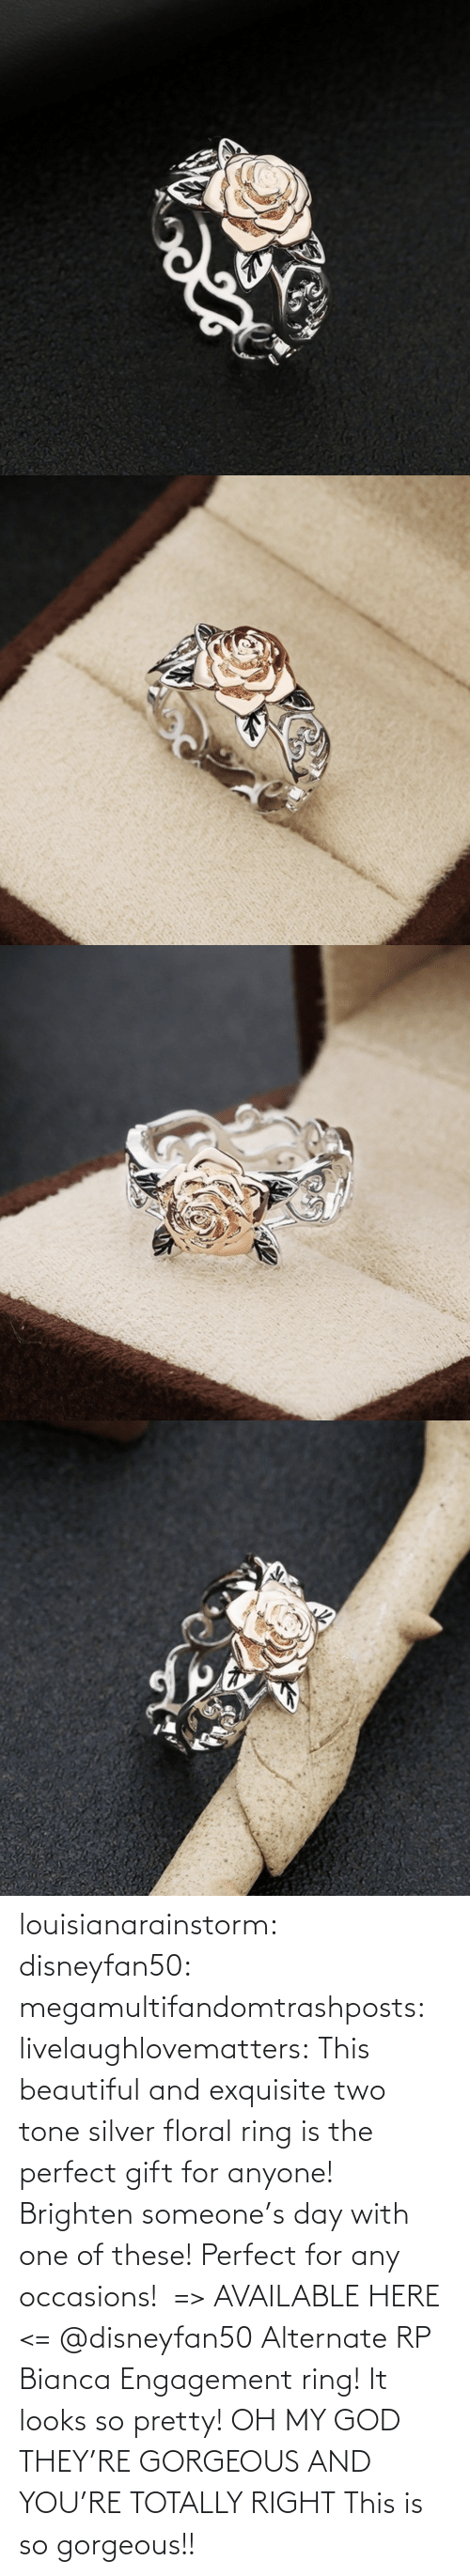 beautiful: louisianarainstorm: disneyfan50:  megamultifandomtrashposts:  livelaughlovematters:  This beautiful and exquisite two tone silver floral ring is the perfect gift for anyone! Brighten someone's day with one of these! Perfect for any occasions!  => AVAILABLE HERE <=    @disneyfan50 Alternate RP Bianca Engagement ring! It looks so pretty!  OH MY GOD THEY'RE GORGEOUS AND YOU'RE TOTALLY RIGHT    This is so gorgeous!!